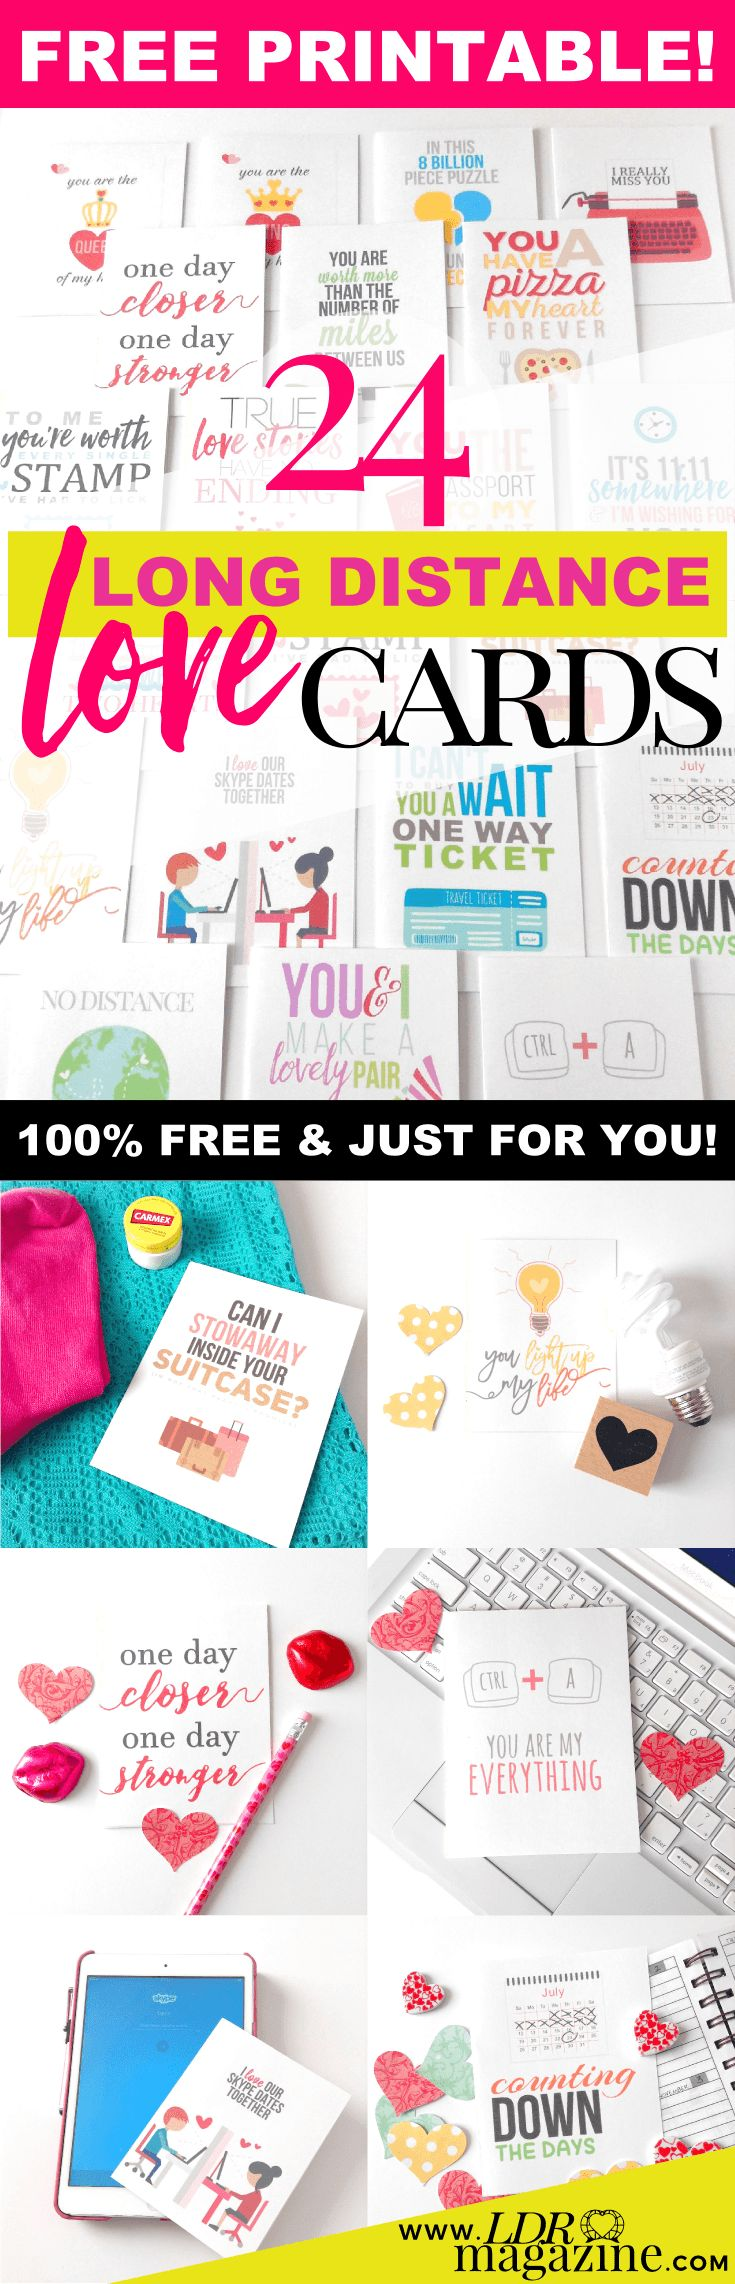 24 Free Printable Long Distance Love Cards - LDR Magazine